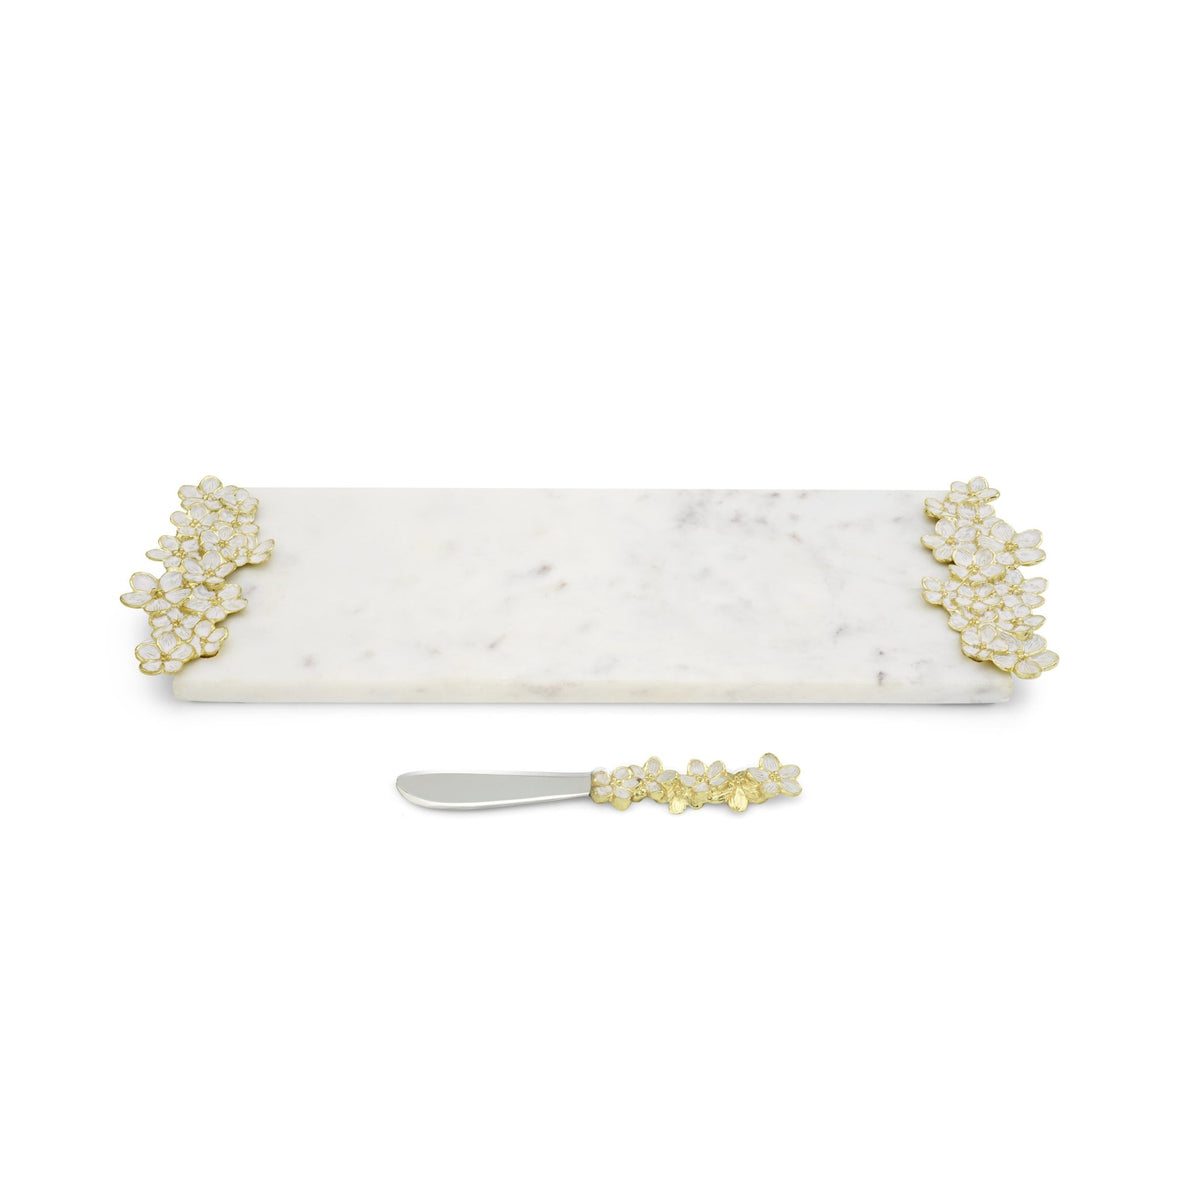 Cherry Blossom Small Cheese Board w/ Knife